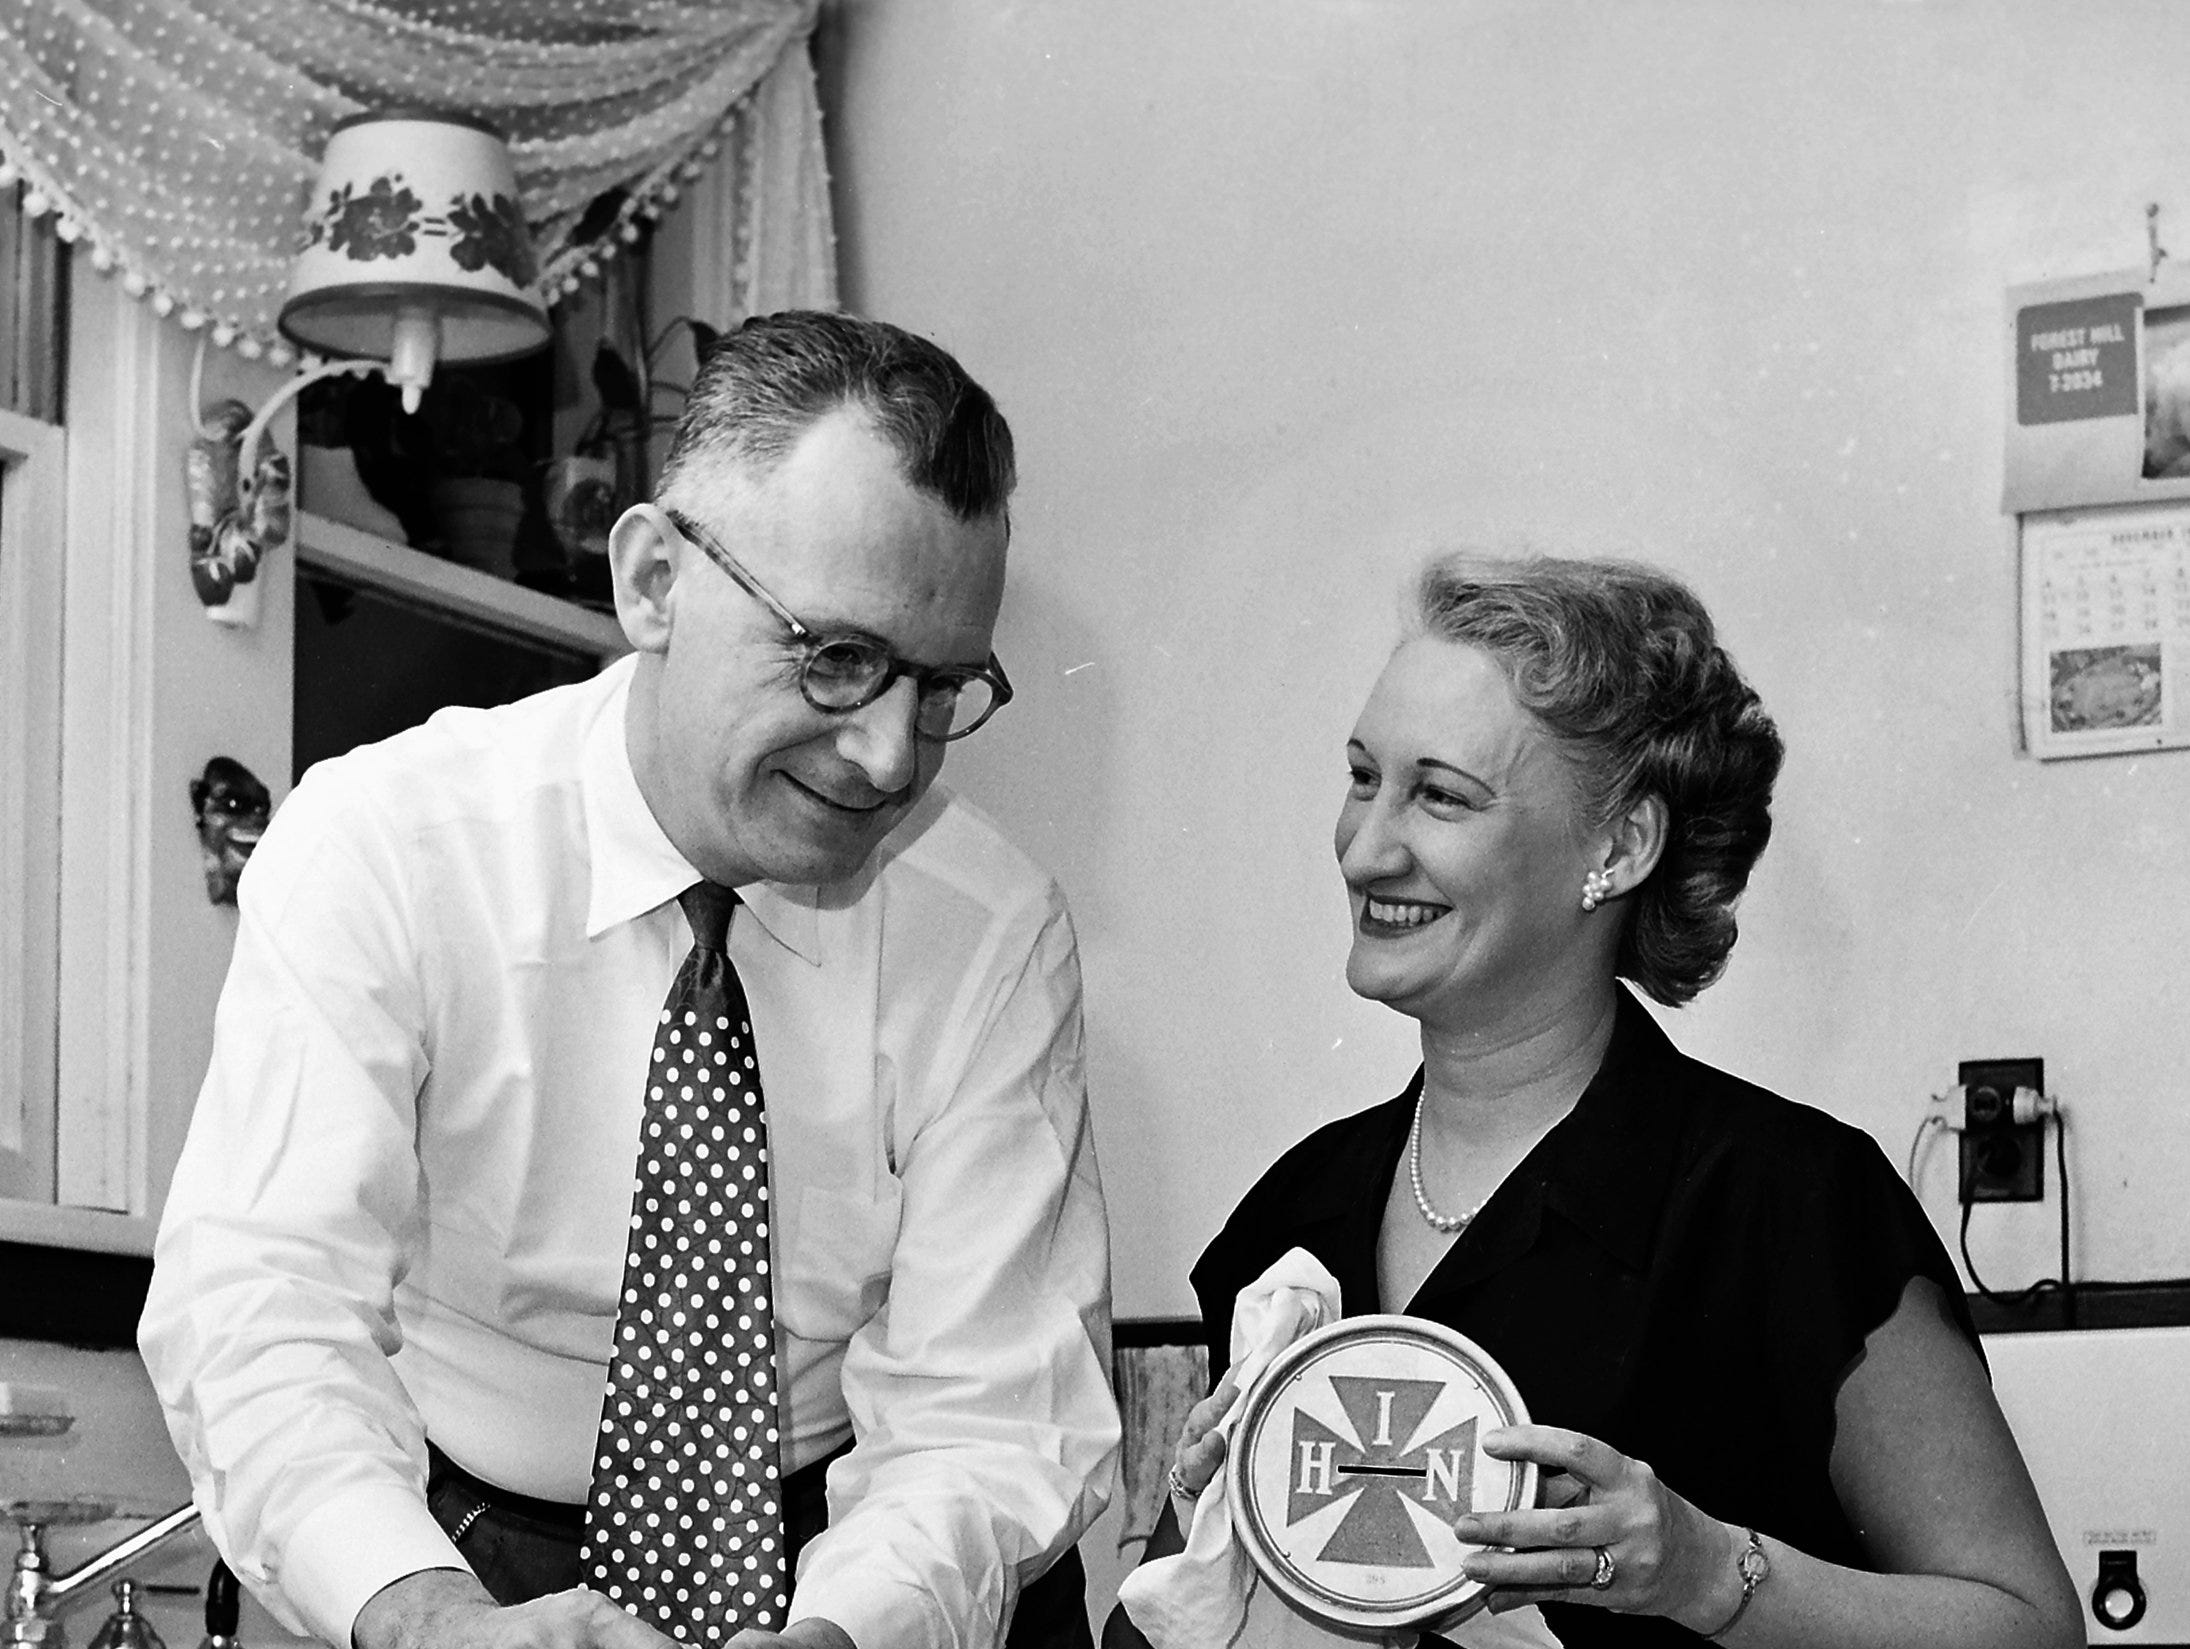 The last of 500 silver and purple collection boxes that will be used by The King's Daughters during their citywide Christmas carol program were made ready in November 1951 by Mrs. Albert Steiner of 276 Malvern, box chairman. Her husband Albert was an able and willing assistant.  Funds collected will be used for the benefit of the Home for Incurables.